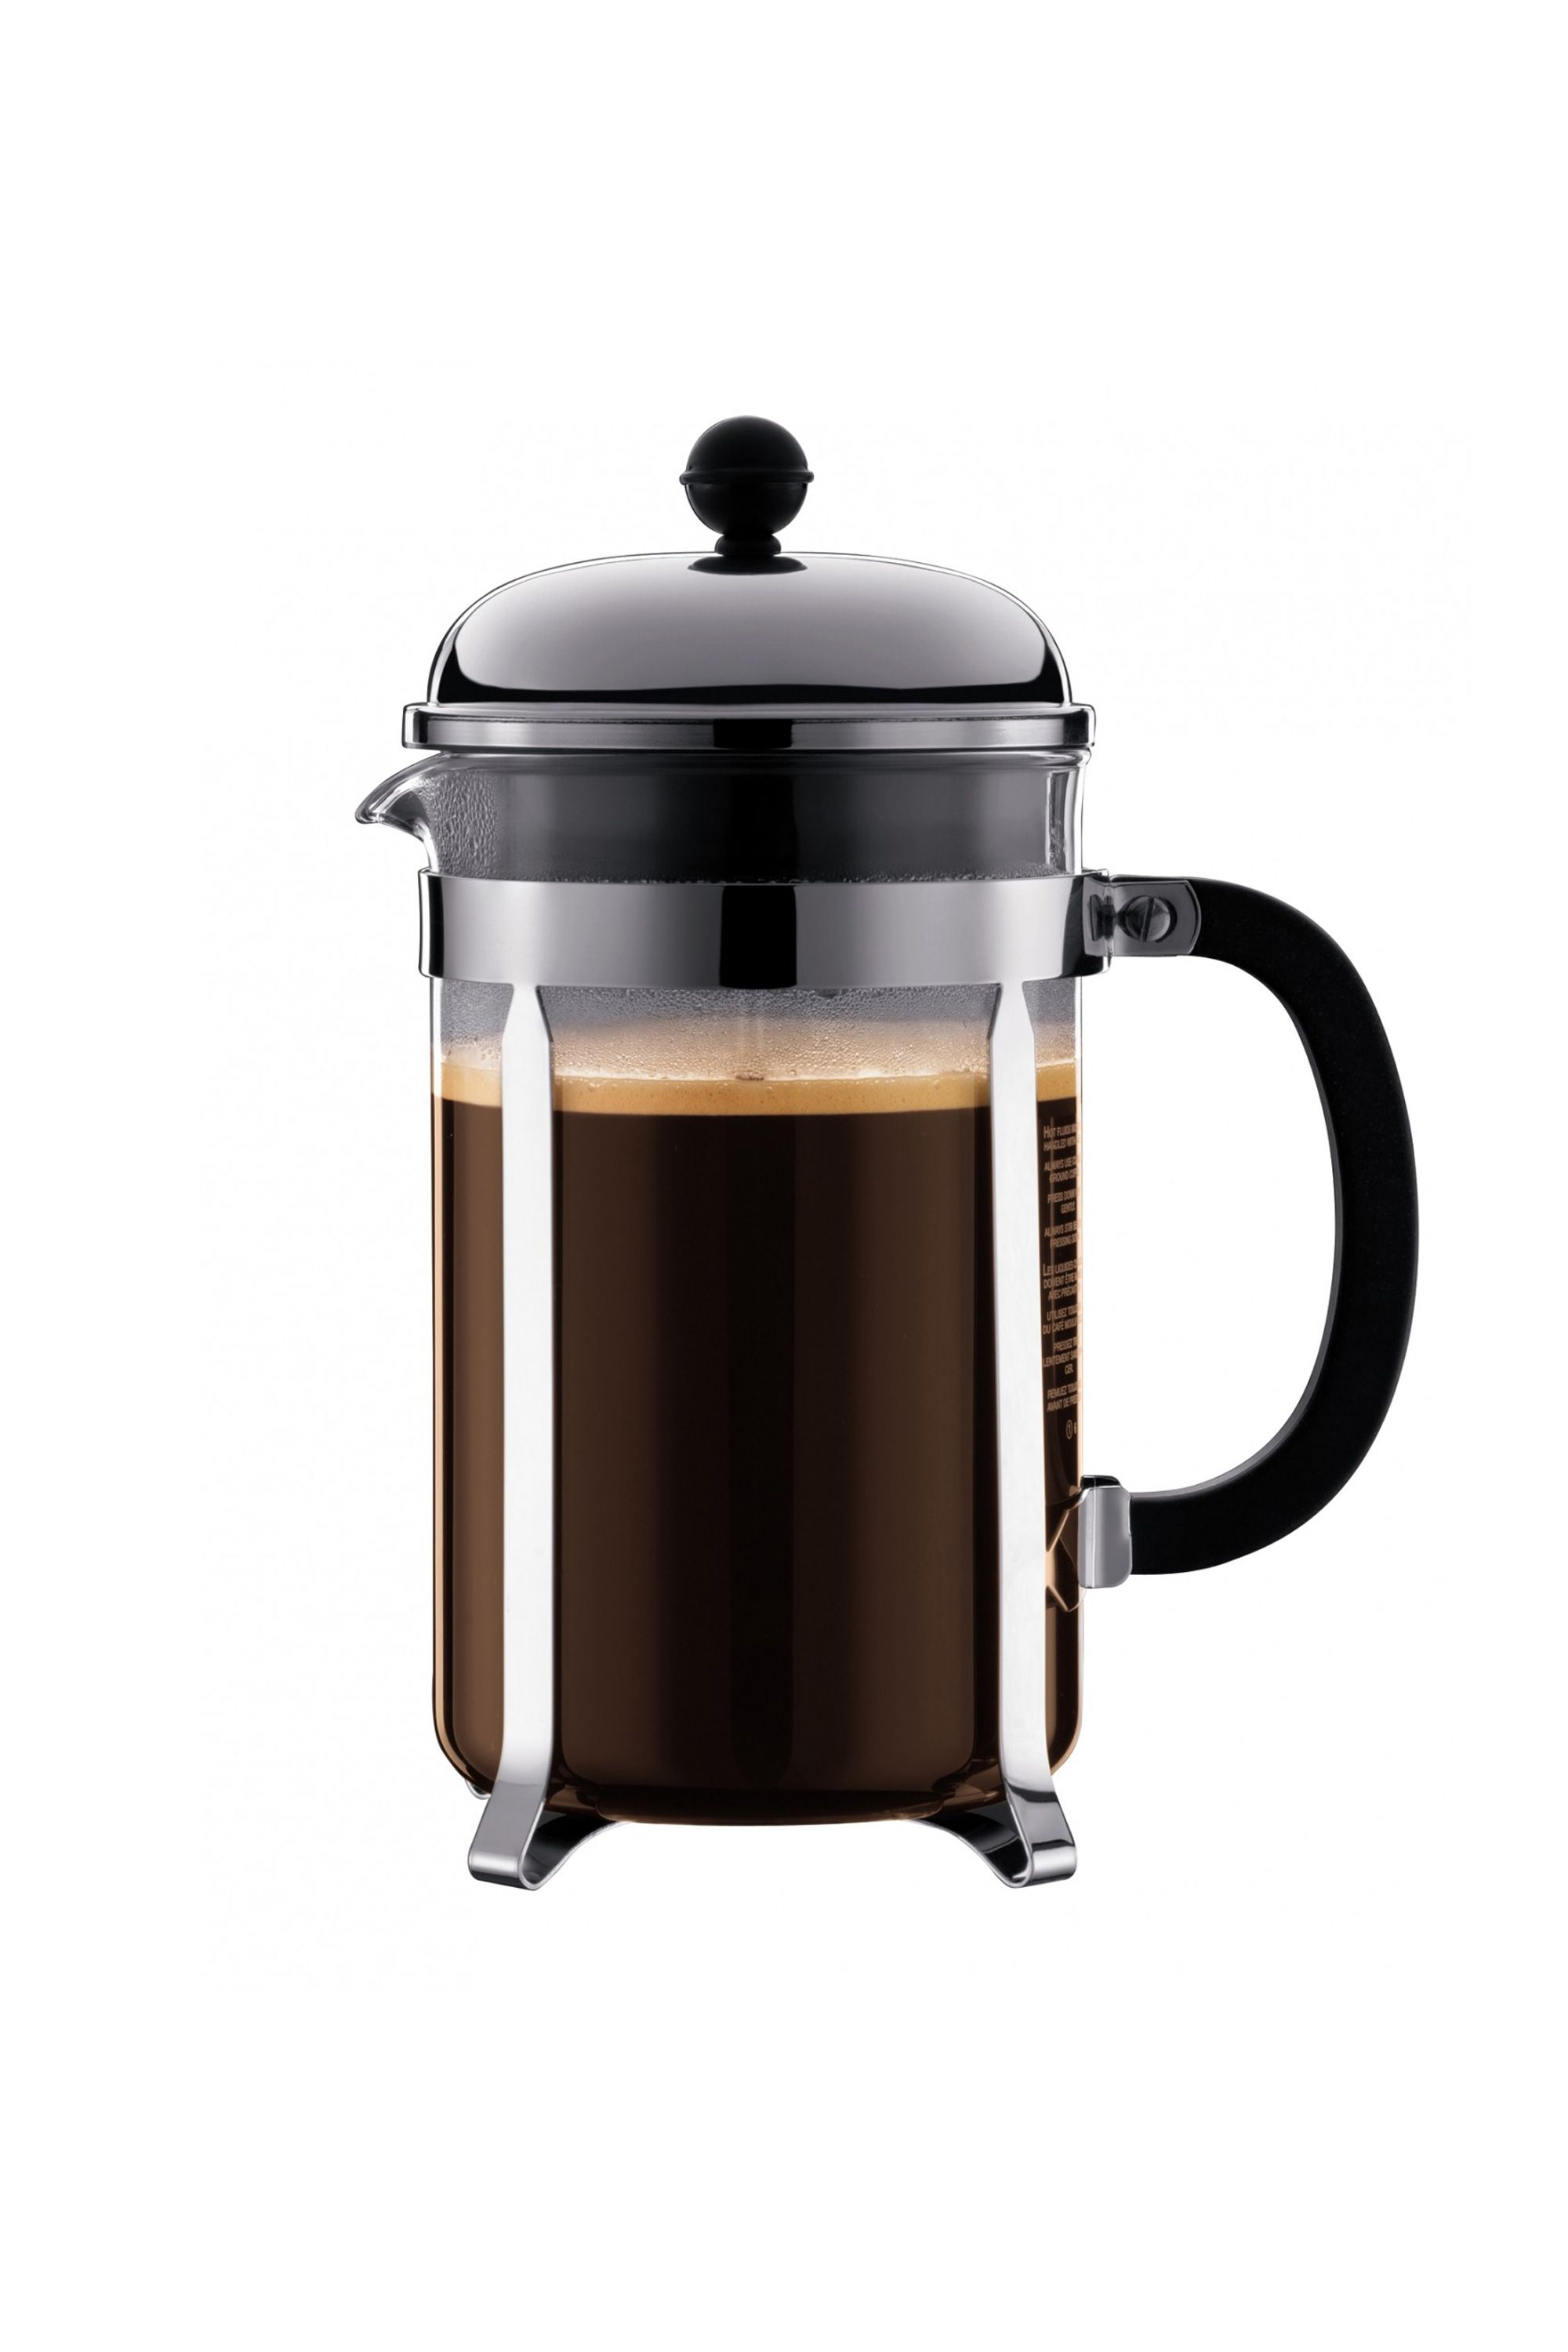 "<p>The Italians may have their macchiato, but the French press is ubiquitous to their neighbors in the north. It's time to say au revoir to the K-Cups and hello to French press brew. </p><p> 	<em data-redactor-tag=""em"">Chambourd ($30) by Bodum, <a href=""http://www.bodum.com/us/en/1923-16us4"" target=""_blank"" data-tracking-id=""recirc-text-link"">bodum.com</a></em></p>"